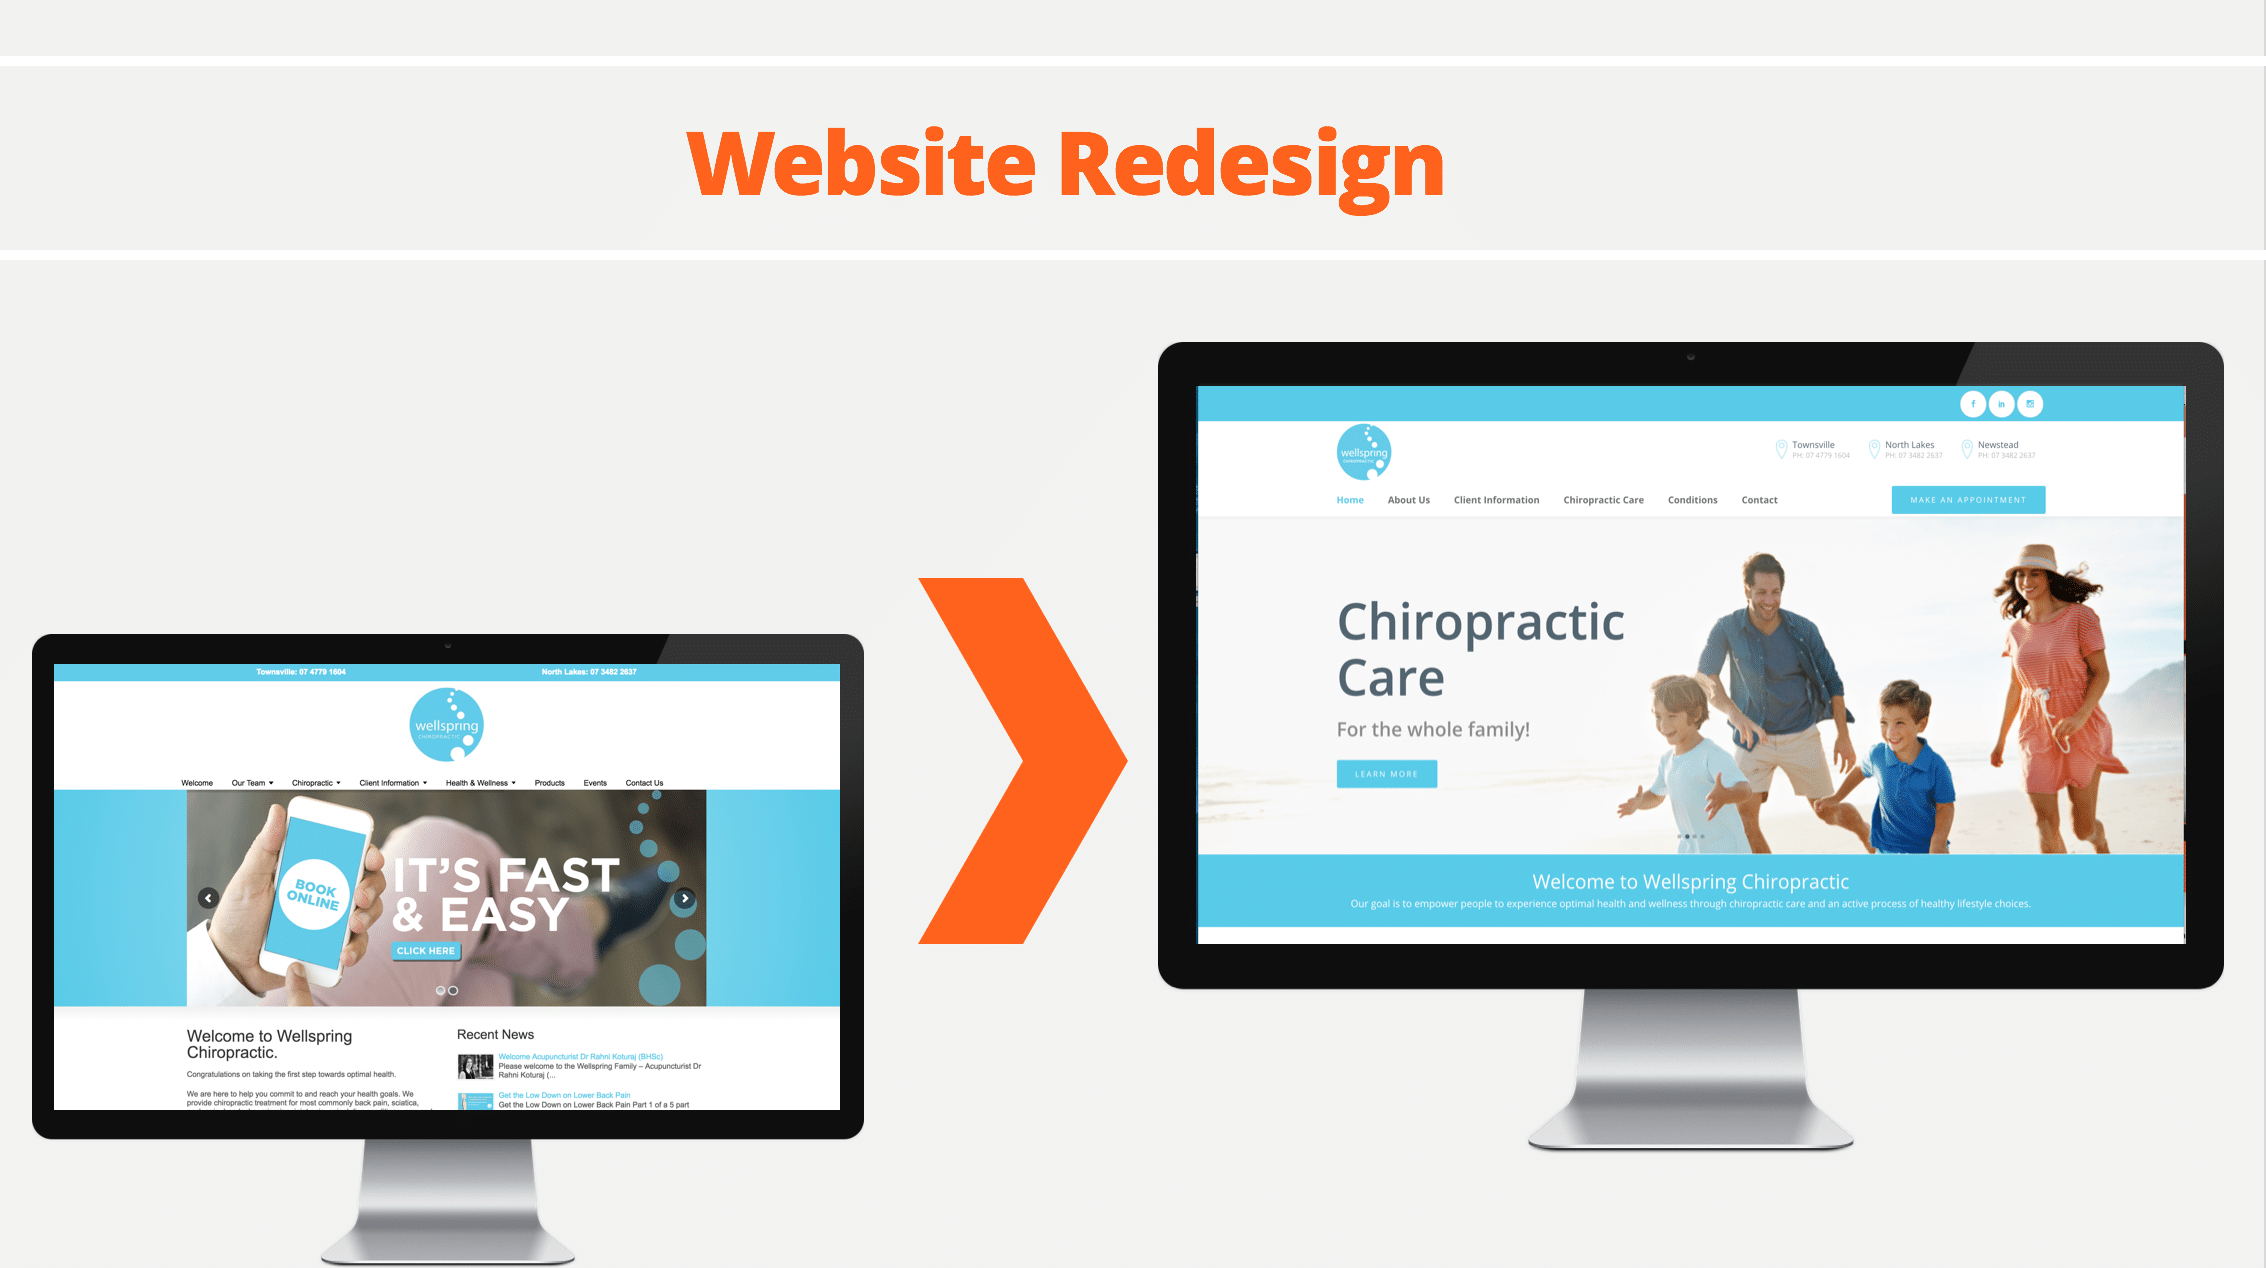 Website redesign image for chiropractor